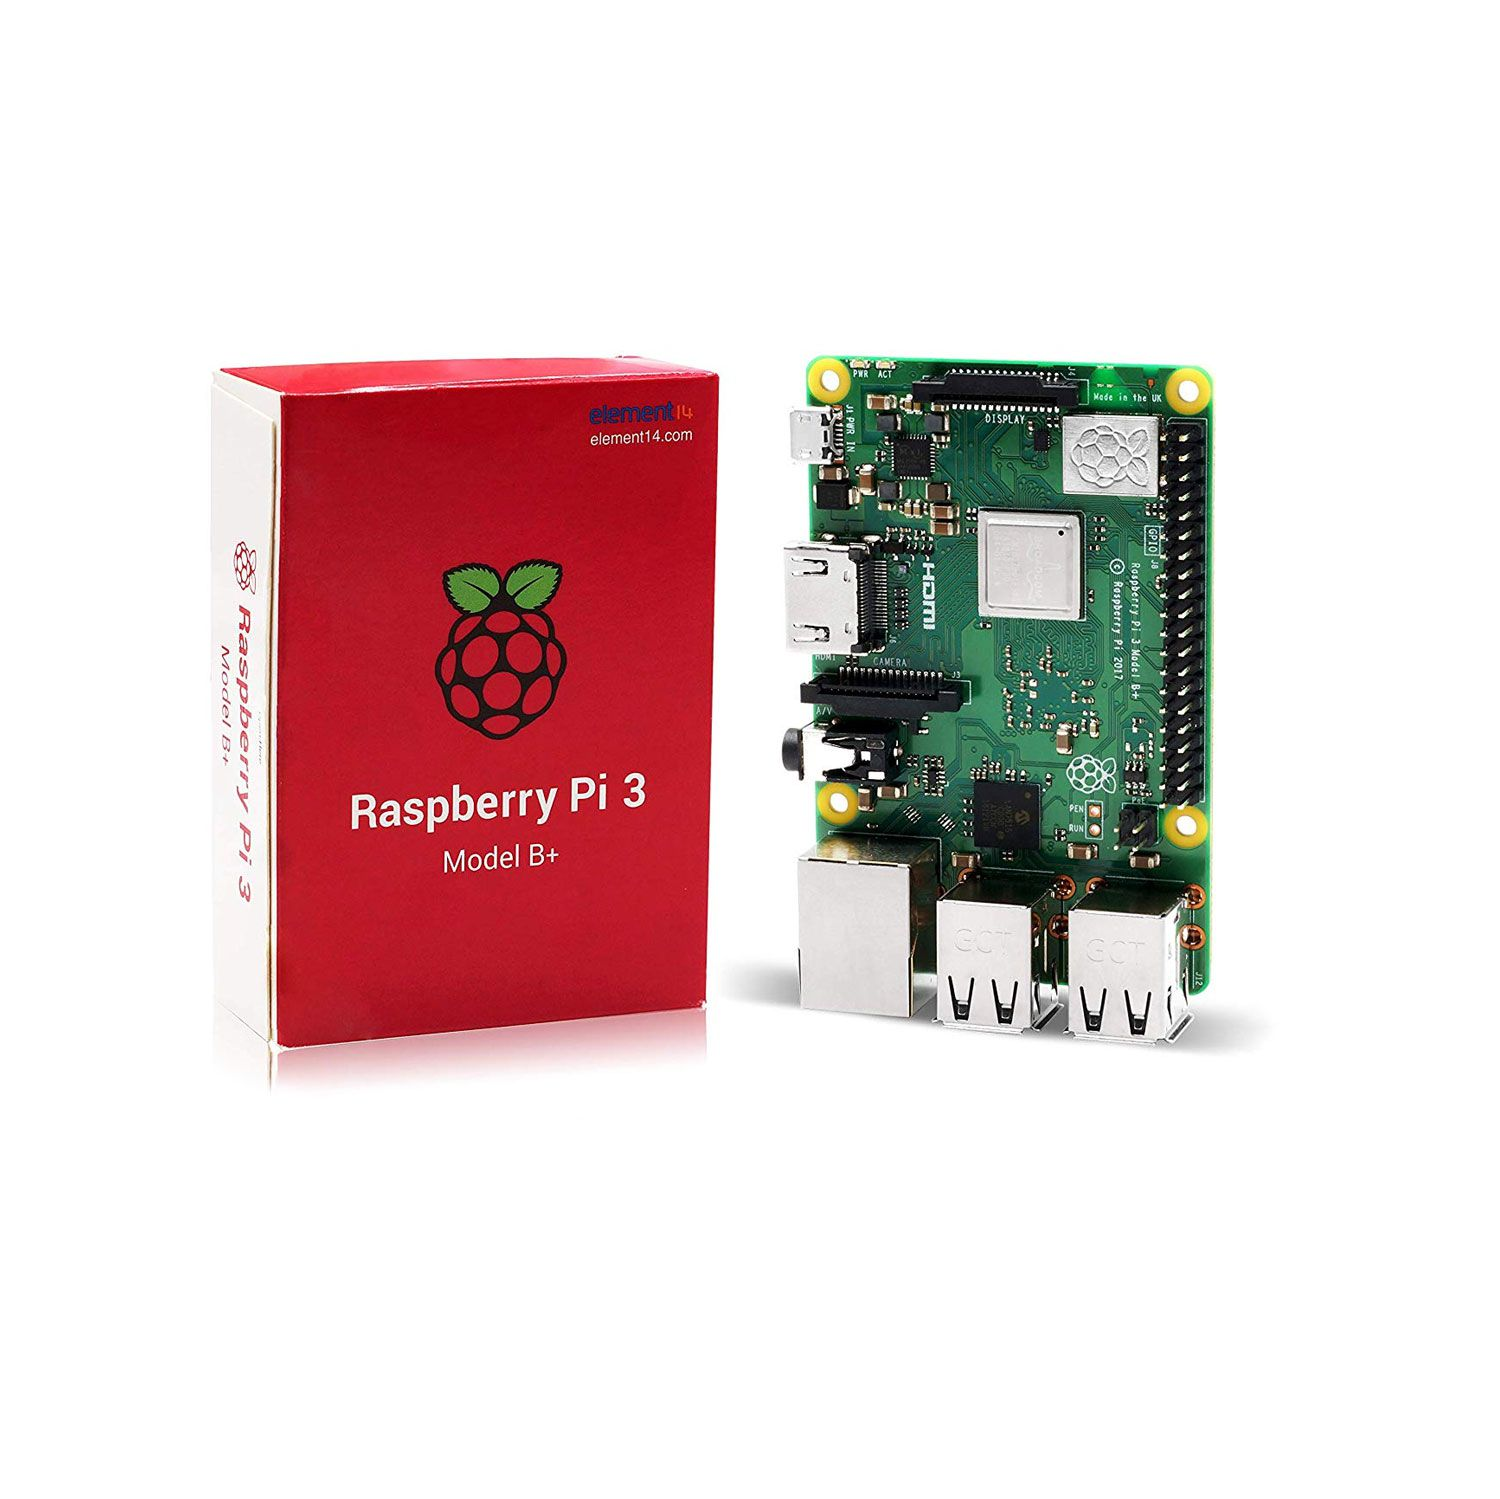 Placa Raspberry Pi 3 B+ 1.4 Ghz 1GB de RAM